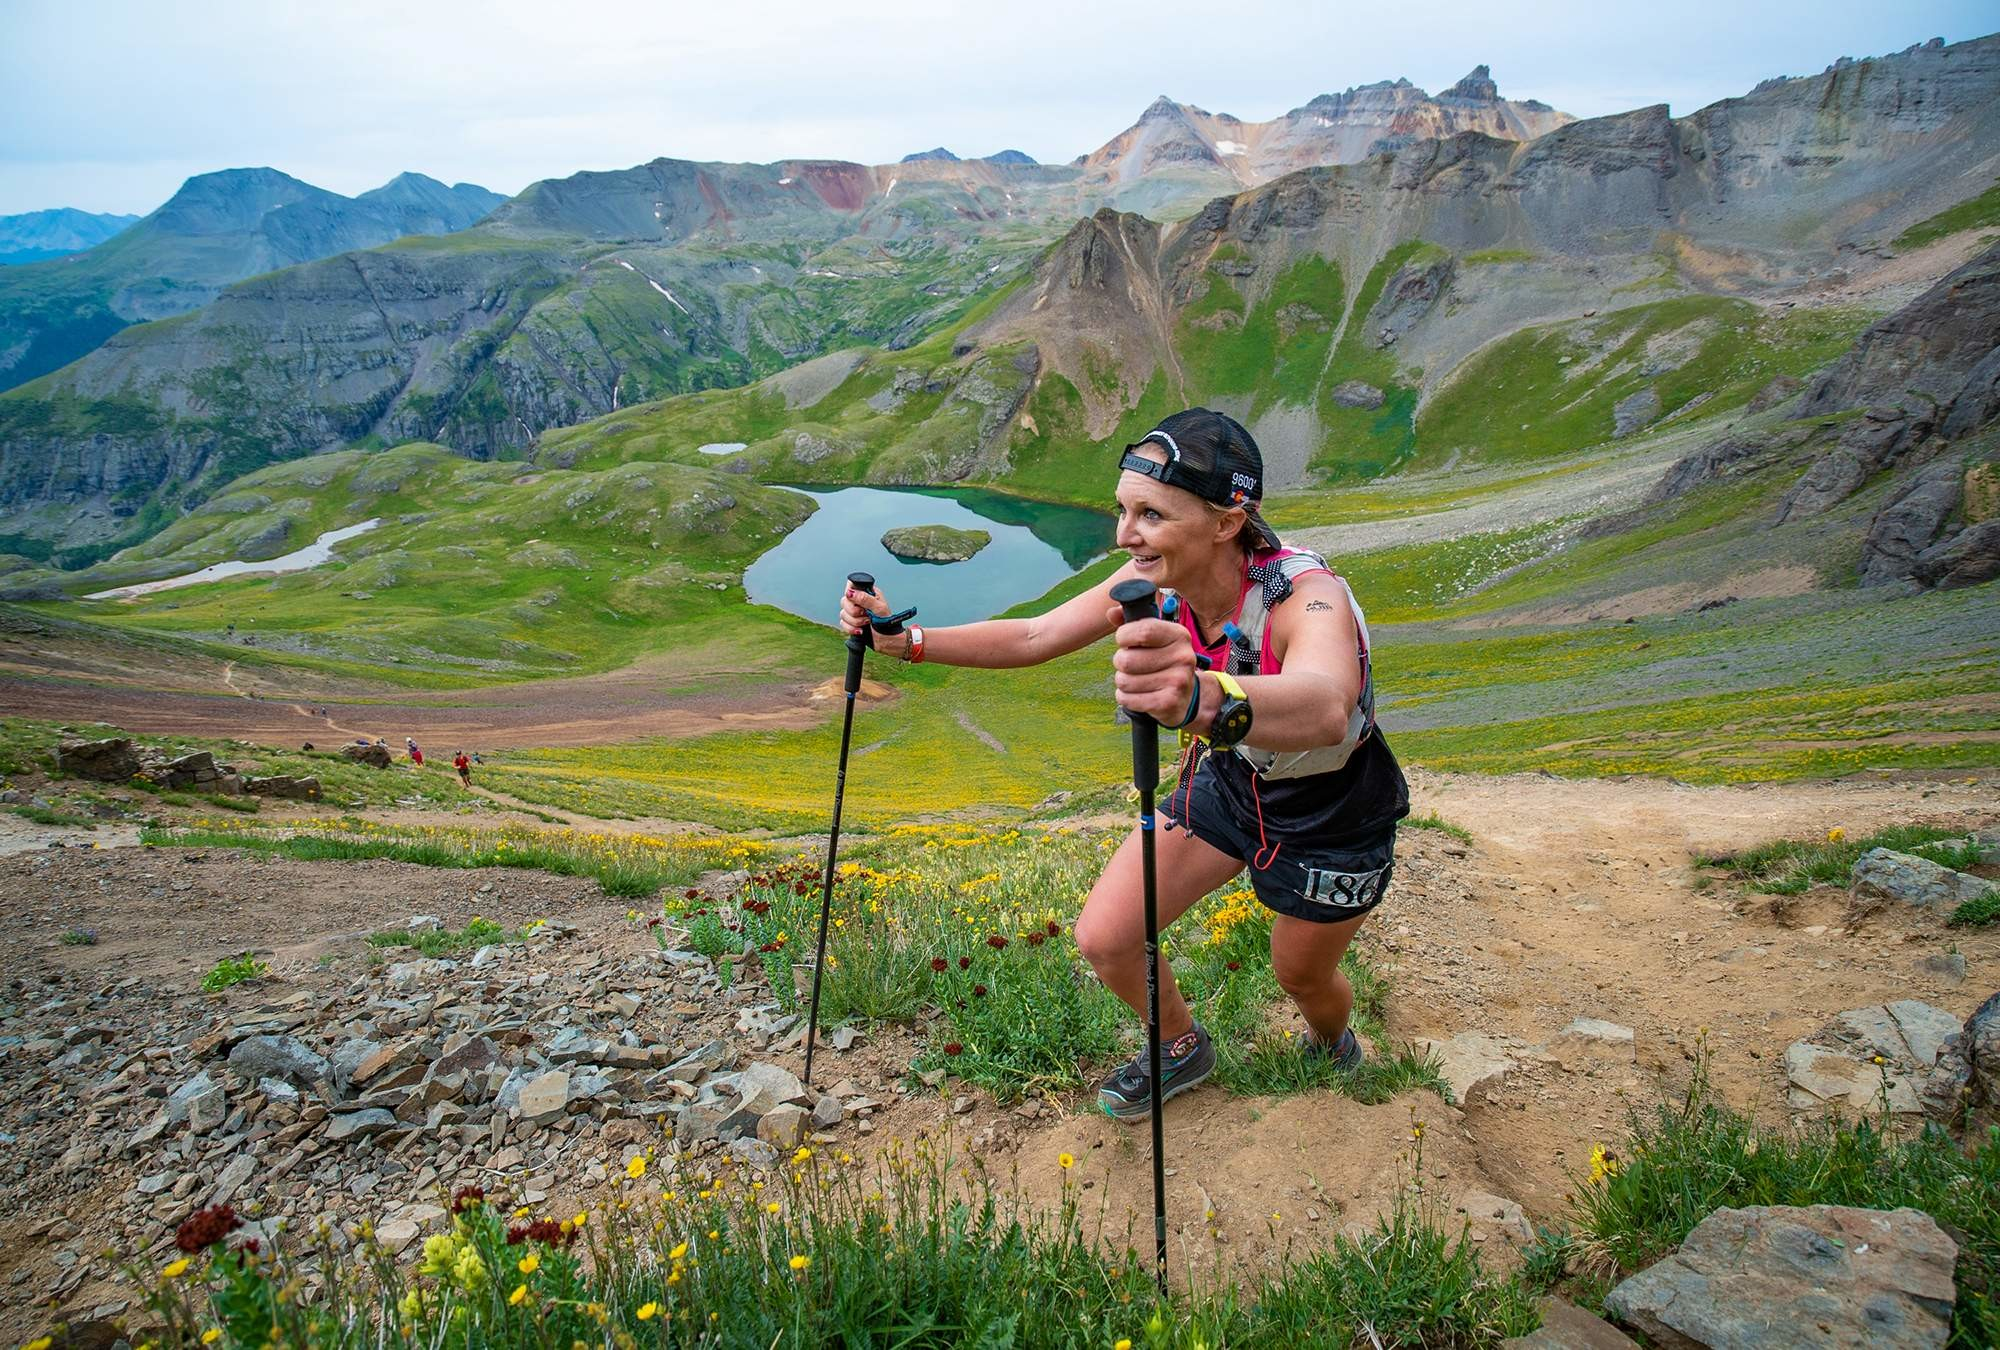 The 2019 Hardrock 100 has been cancelled due to historic snowfall effecting more than 40 percent of the course